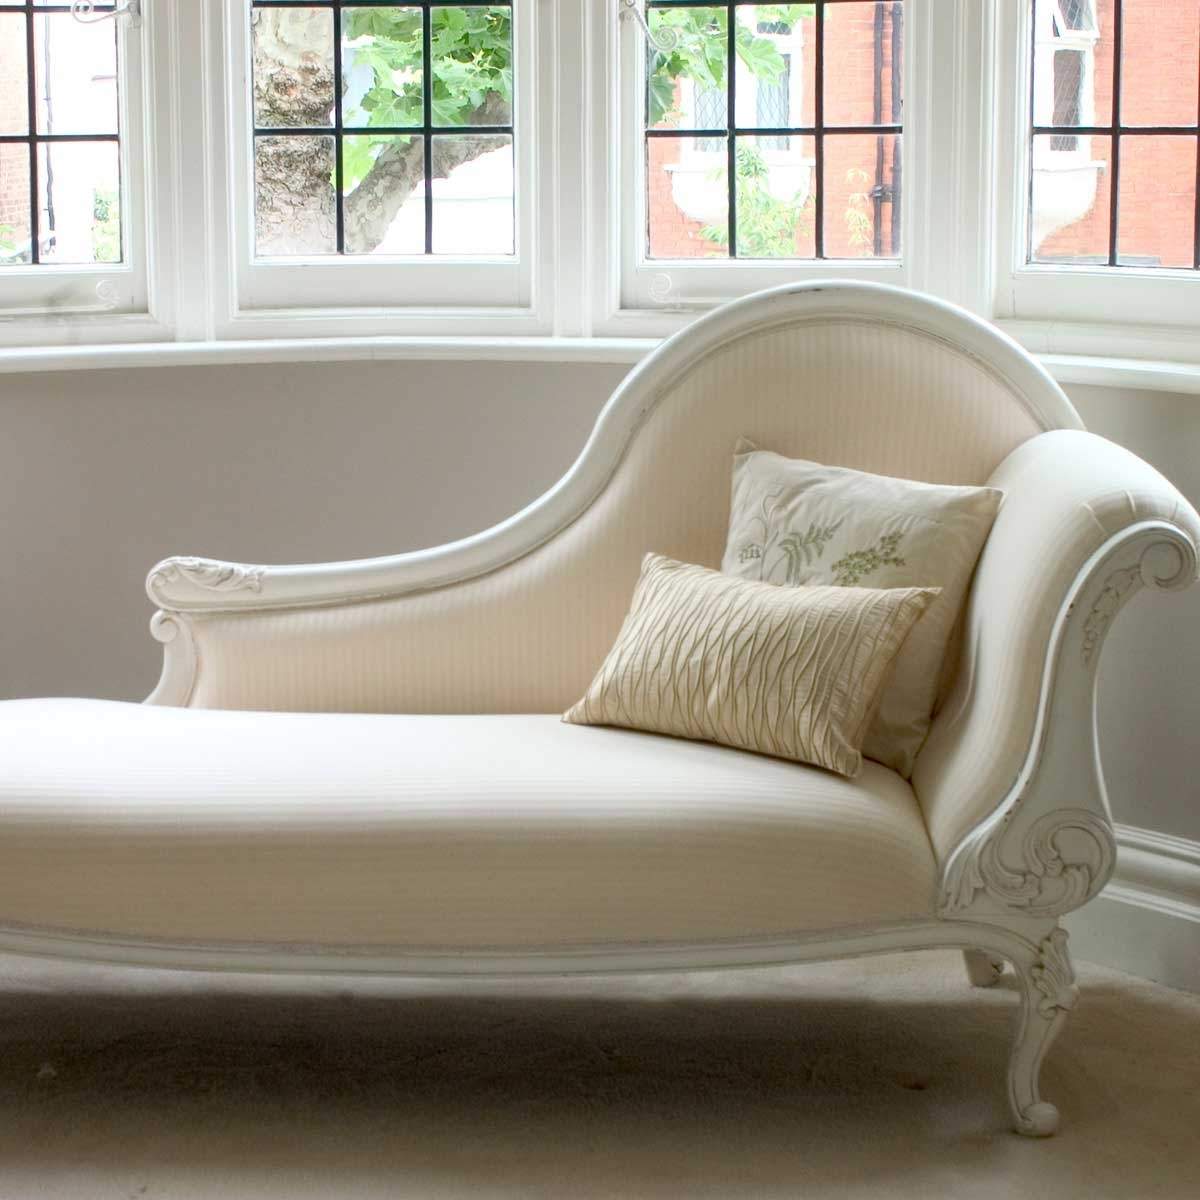 Chaise In White Chaise Lounge Chairs (View 2 of 15)